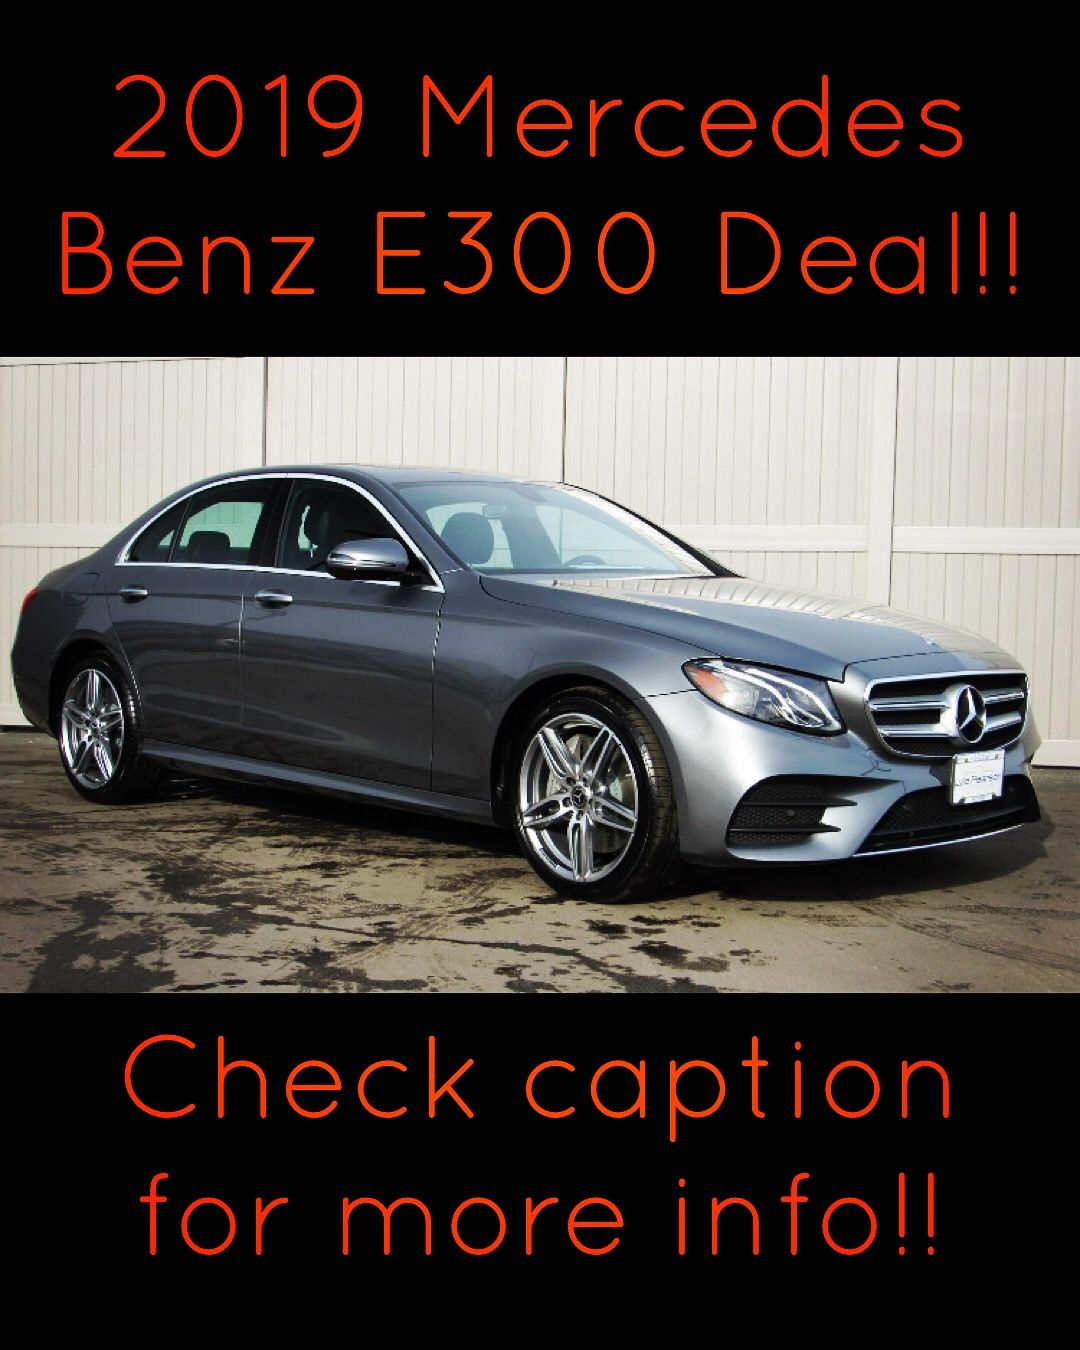 Check Out This Deal We Have On A 2019 Mercedes Benz E300